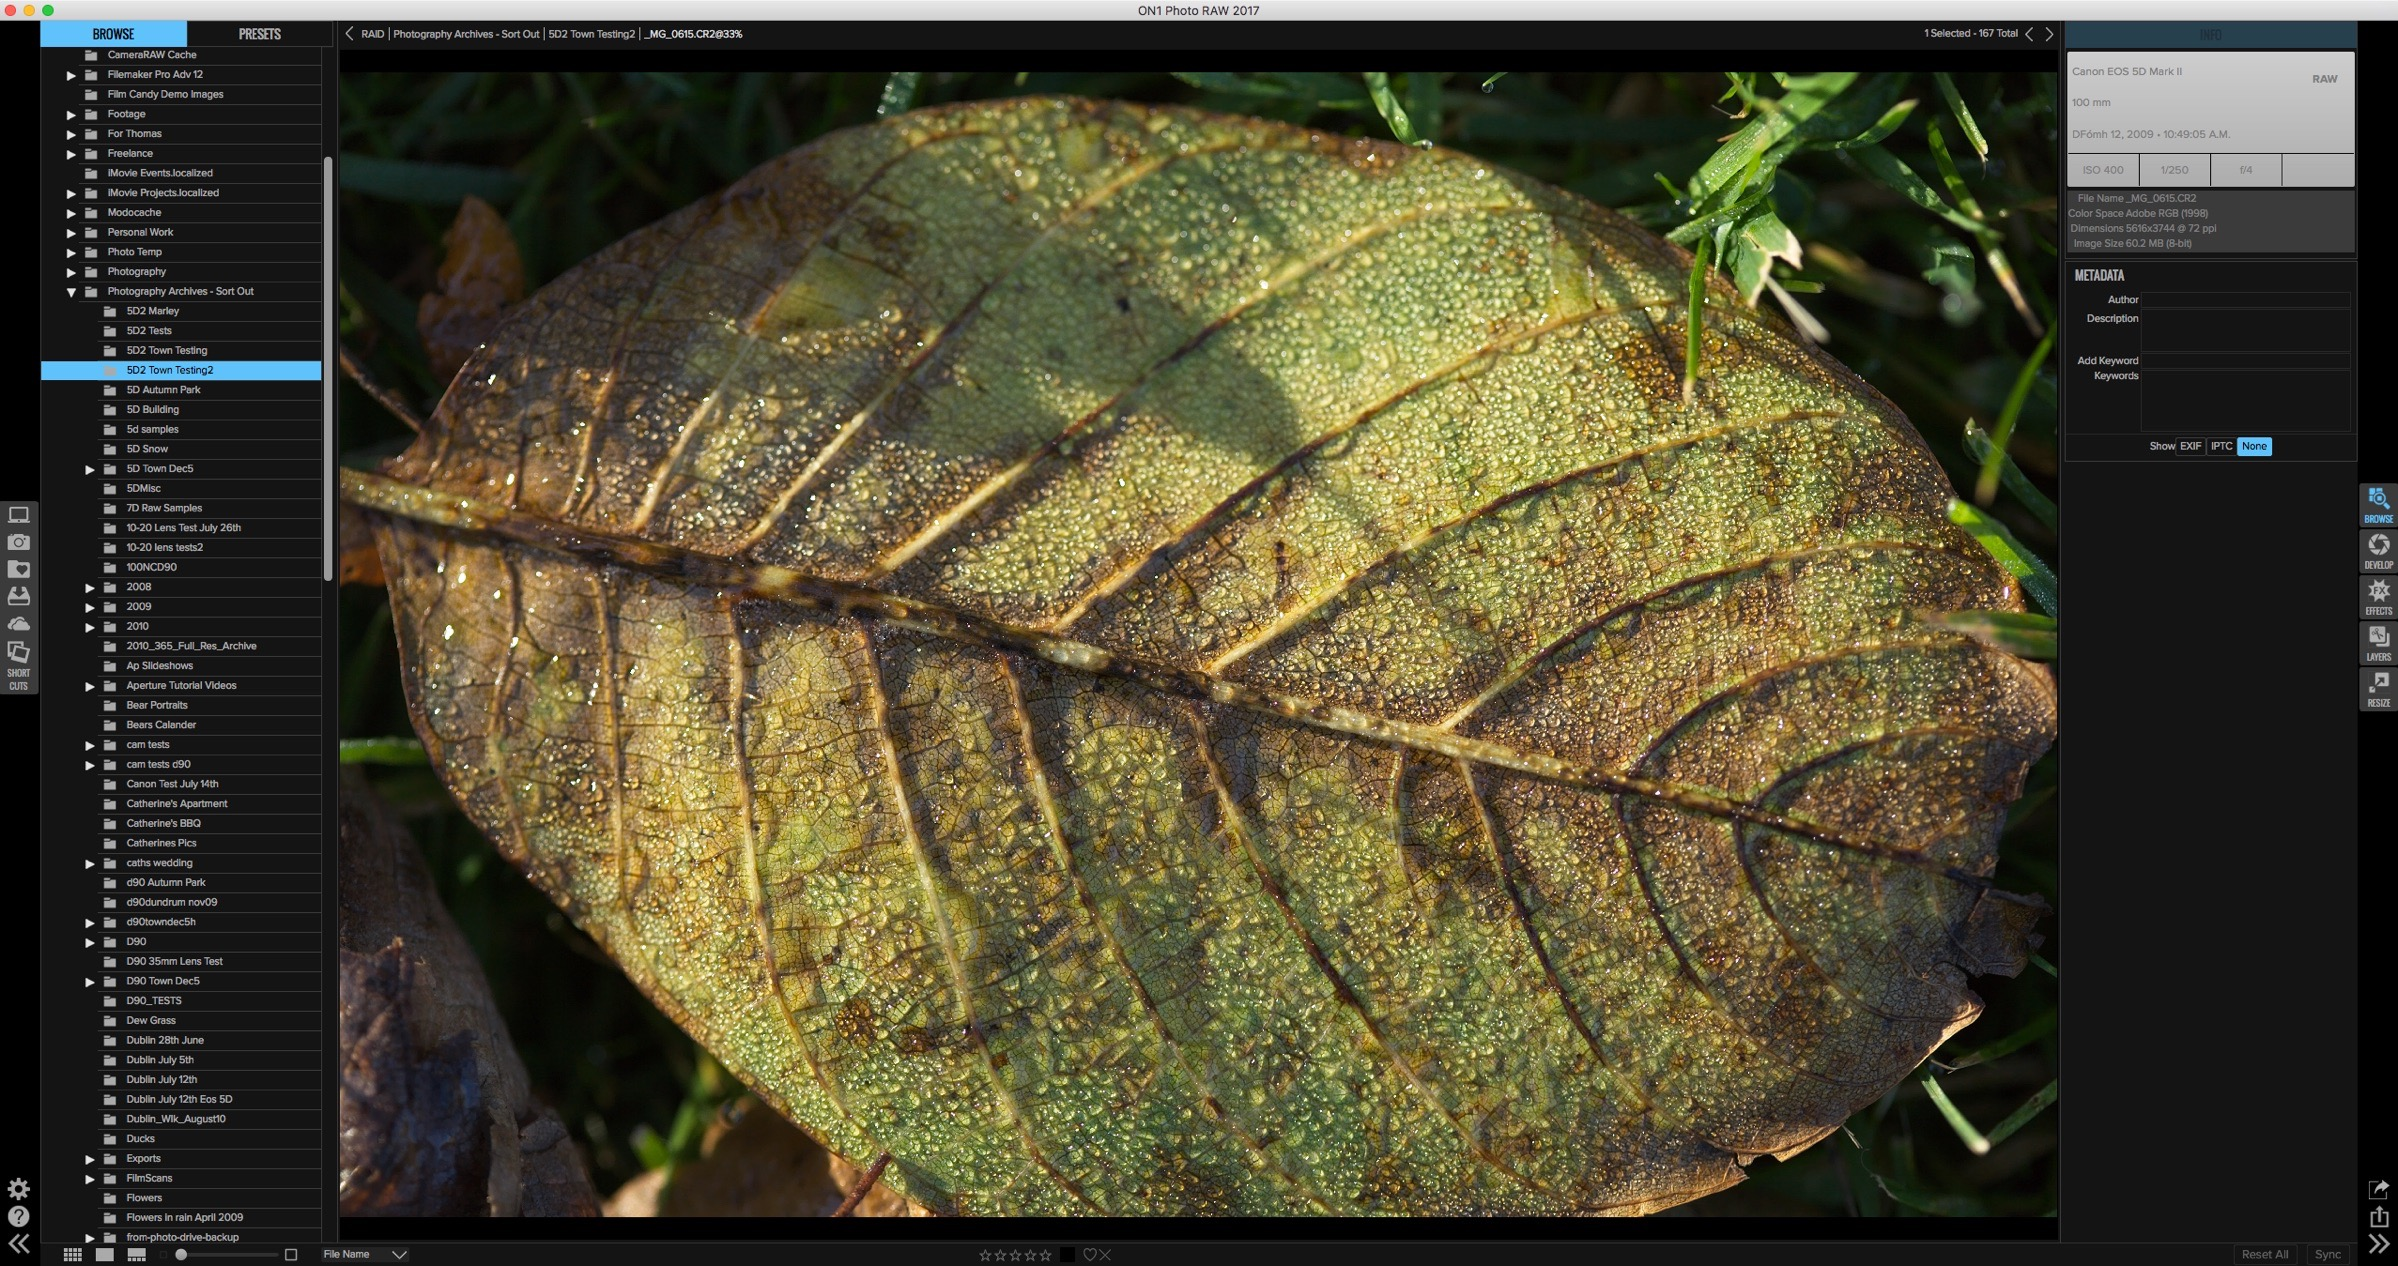 Raw Image from 5D Mark II